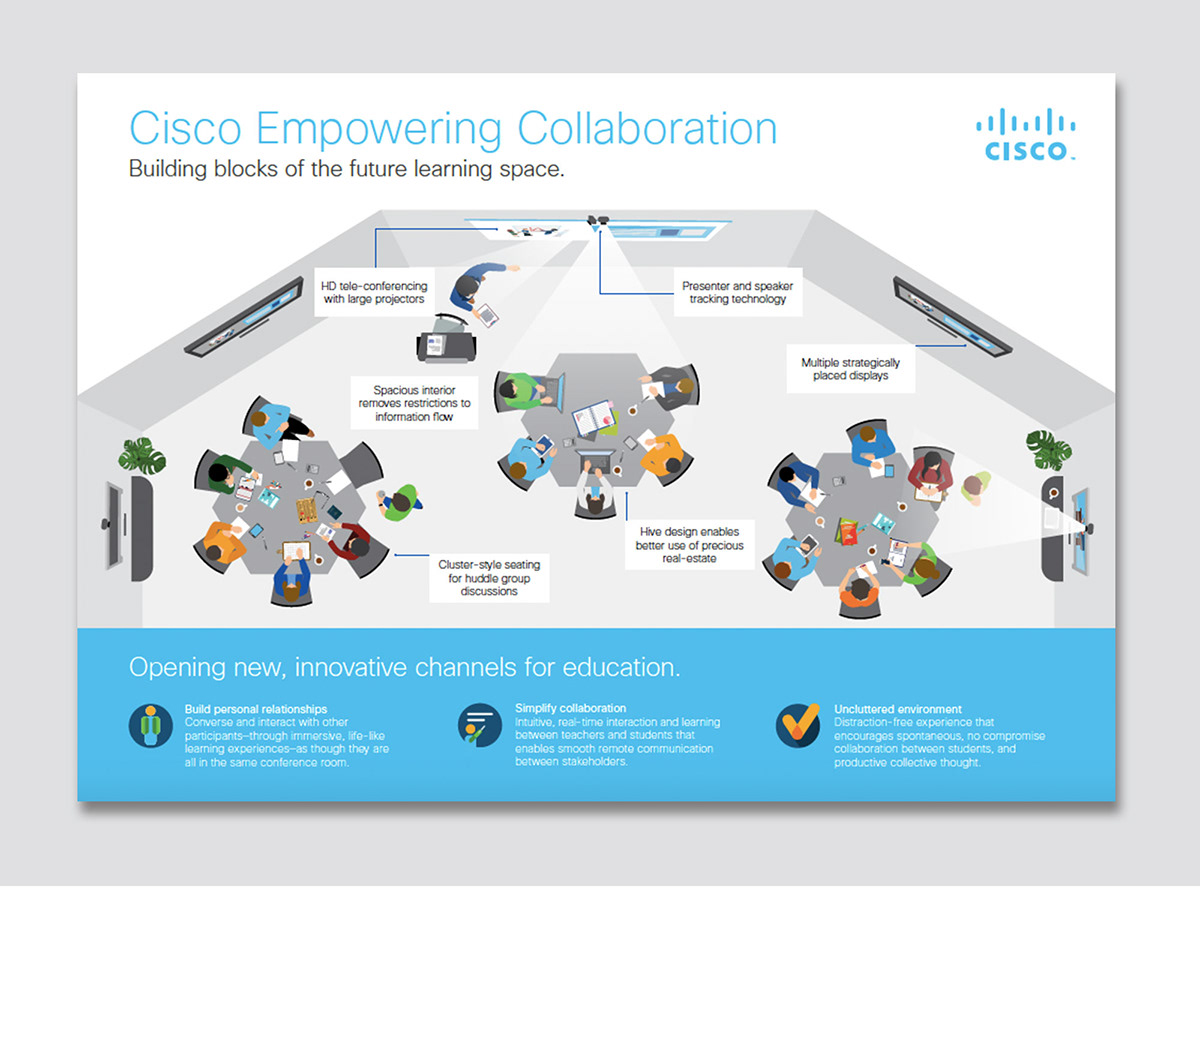 Cisco Empowering Collaboration on Pantone Canvas Gallery